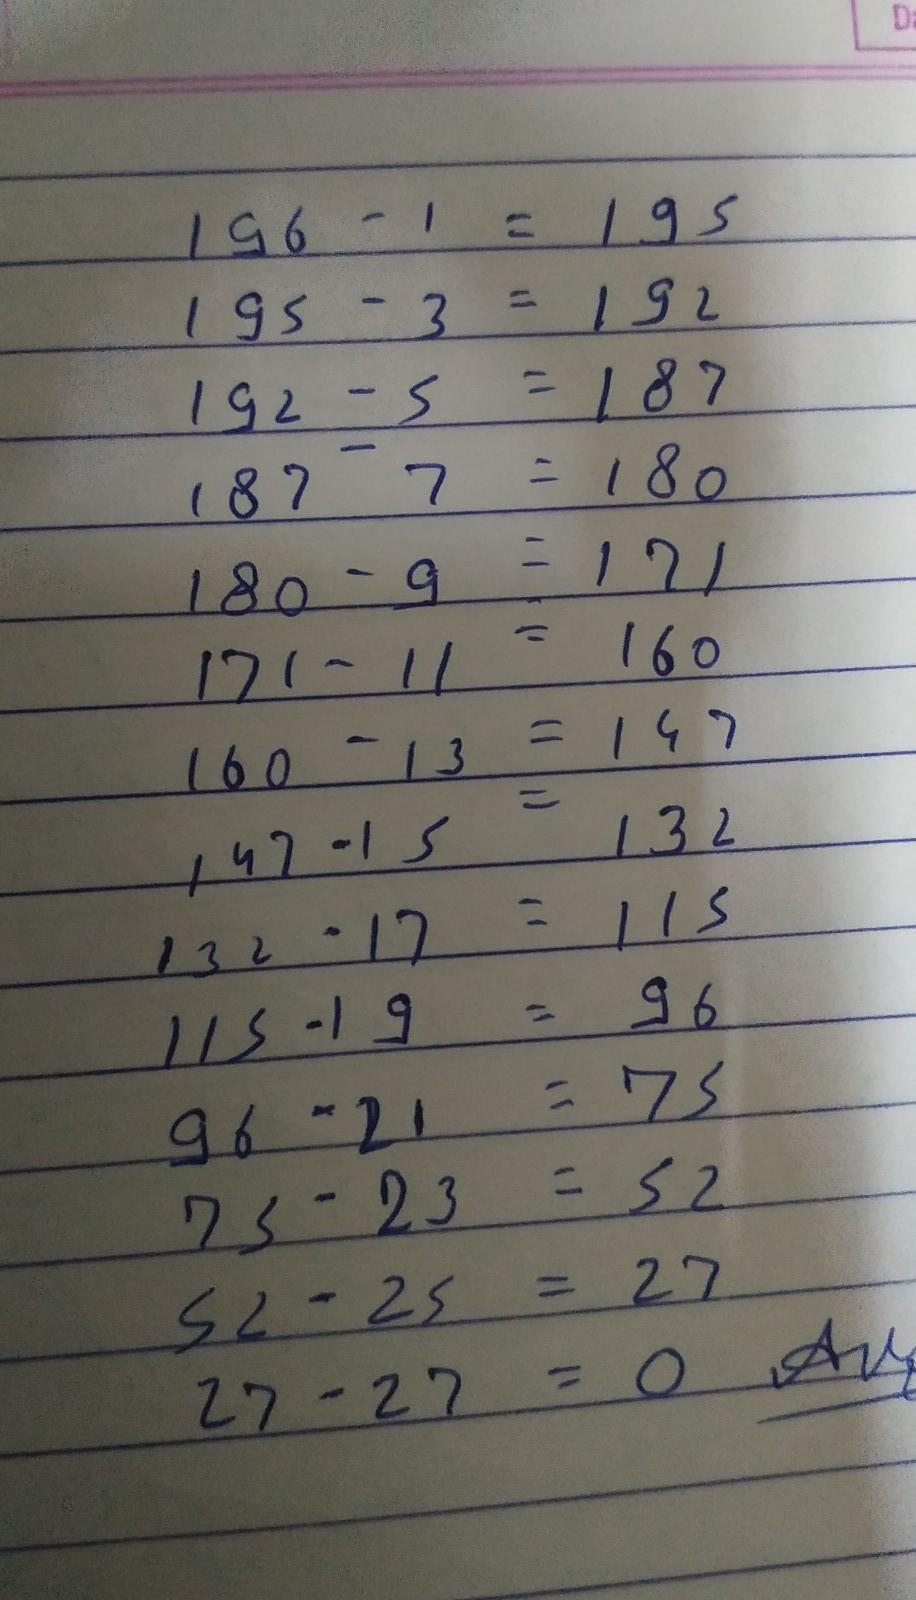 Square Root Of 225 By Repeated Subtraction – Divide this estimate into the number by repeated subtraction of odd numbers starting from 1, find whether the following numbers are perfect squares or not?